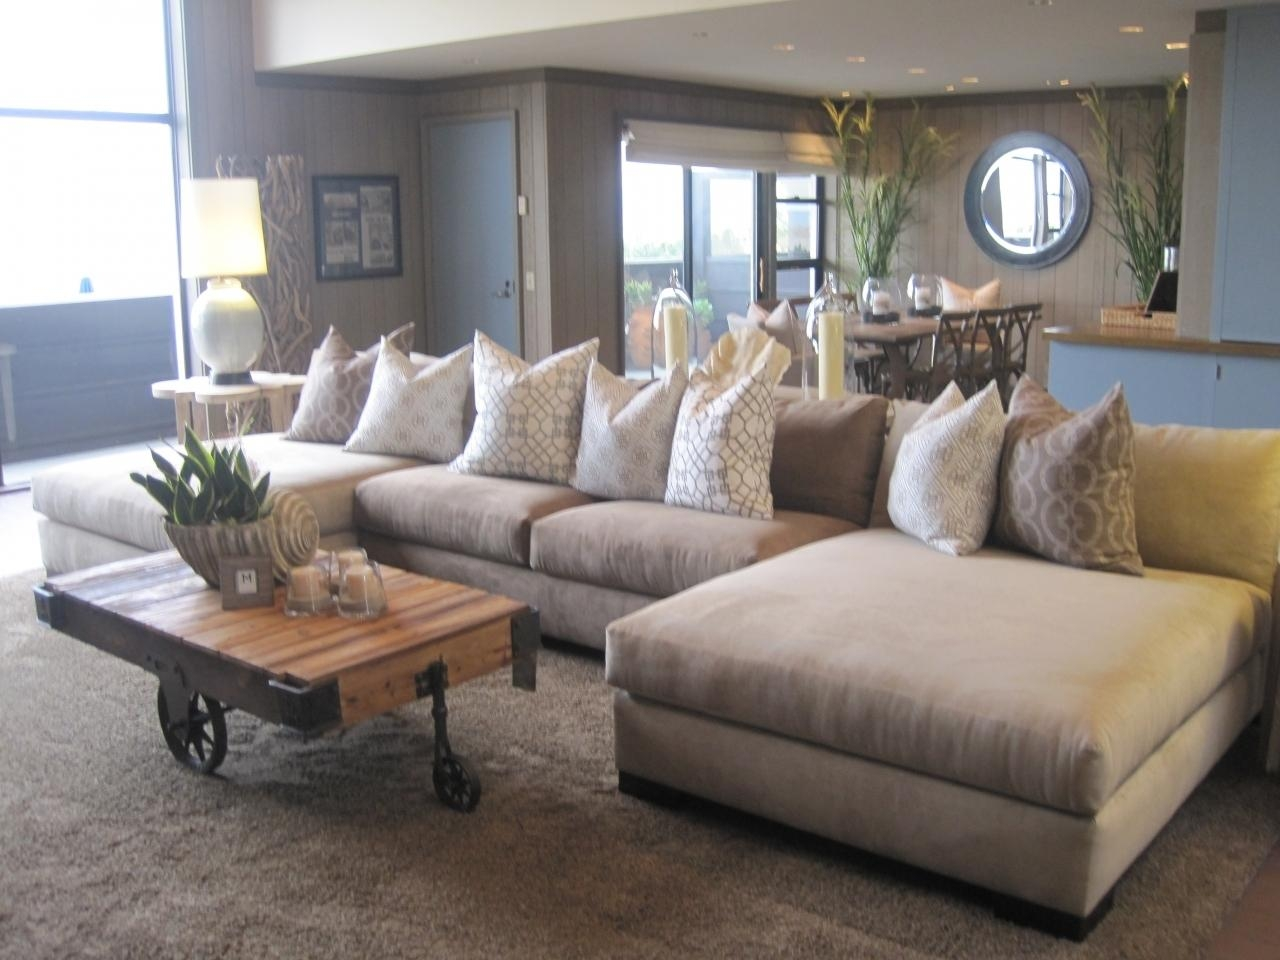 Sofas Center : Large Sectional Sofas With Ottoman Wilmington In Sectional Sofa With Large Ottoman (Image 17 of 20)